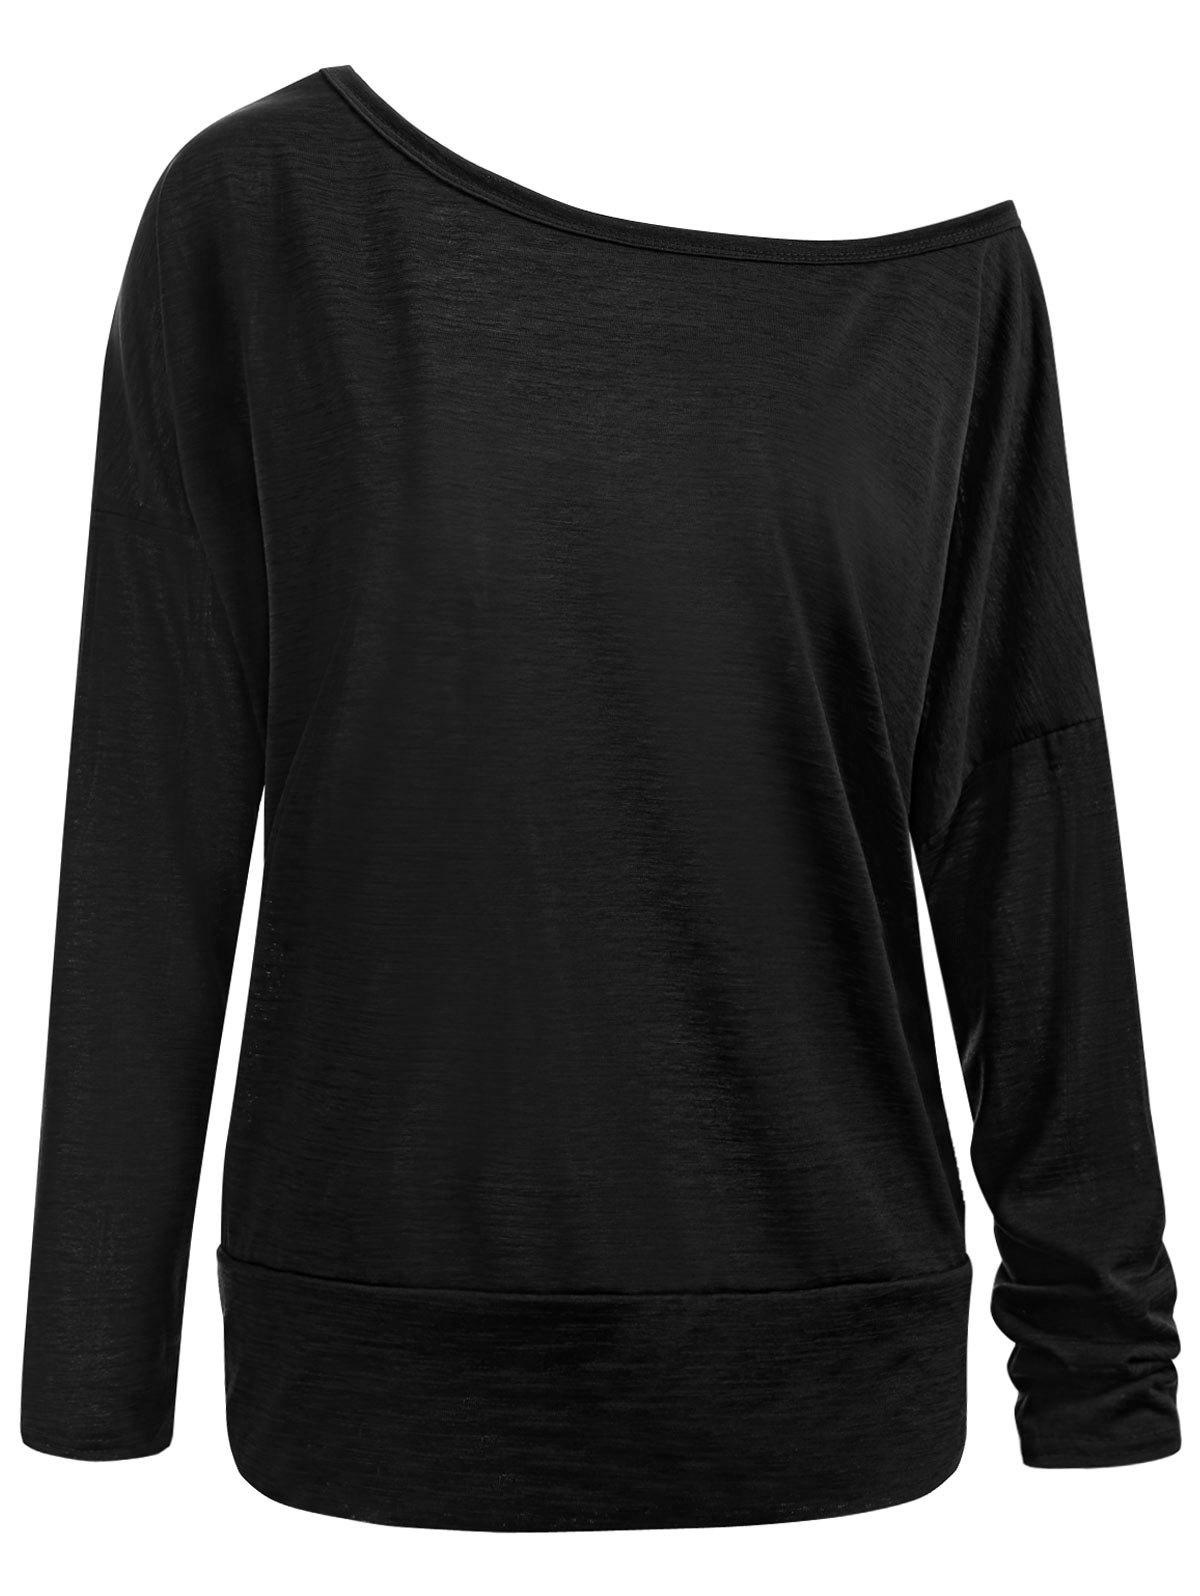 Plus Size Skew Neck Long Sleeve Basic T-shirtWOMEN<br><br>Size: 4XL; Color: BLACK; Material: Cotton Blends,Polyester; Fabric Type: Jersey; Shirt Length: Regular; Sleeve Length: Full; Collar: Skew Collar; Style: Casual; Season: Fall,Winter; Pattern Type: Solid; Weight: 0.3100kg; Package Contents: 1 x Top;